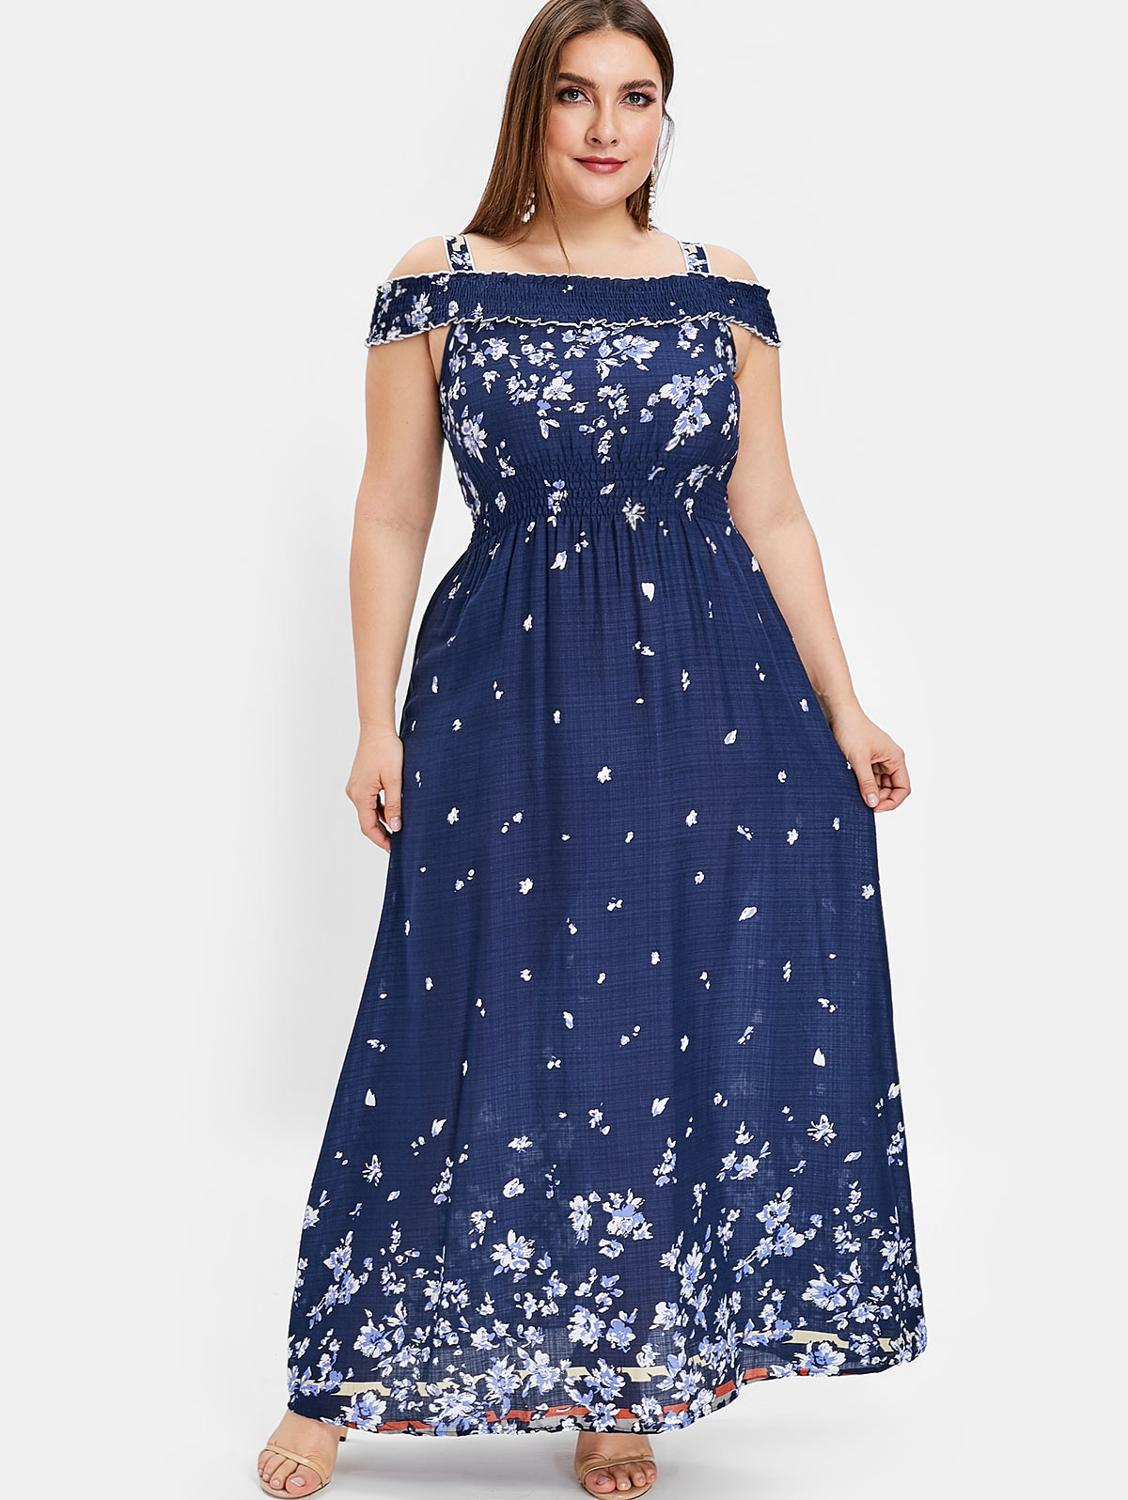 US $15.12 48% OFF|Wipalo Plus Size Floral Print Cold Shoulder Maxi Dress  Women High Waist Dresses Bohemian Robe Femme Short Sleeve Vestidos Mujer-in  ...